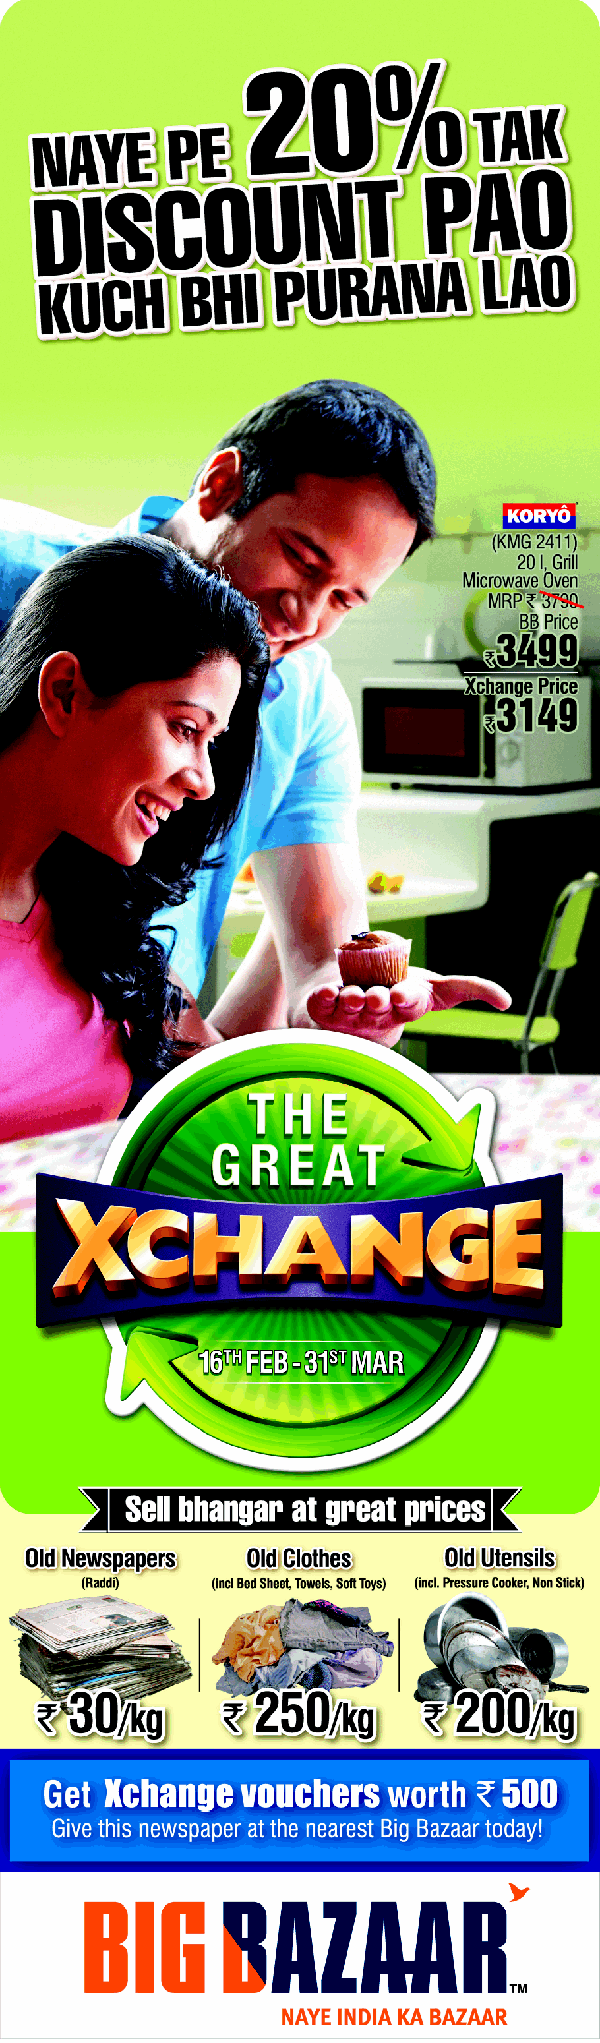 Big Bazaar - The Great Exchange Offer